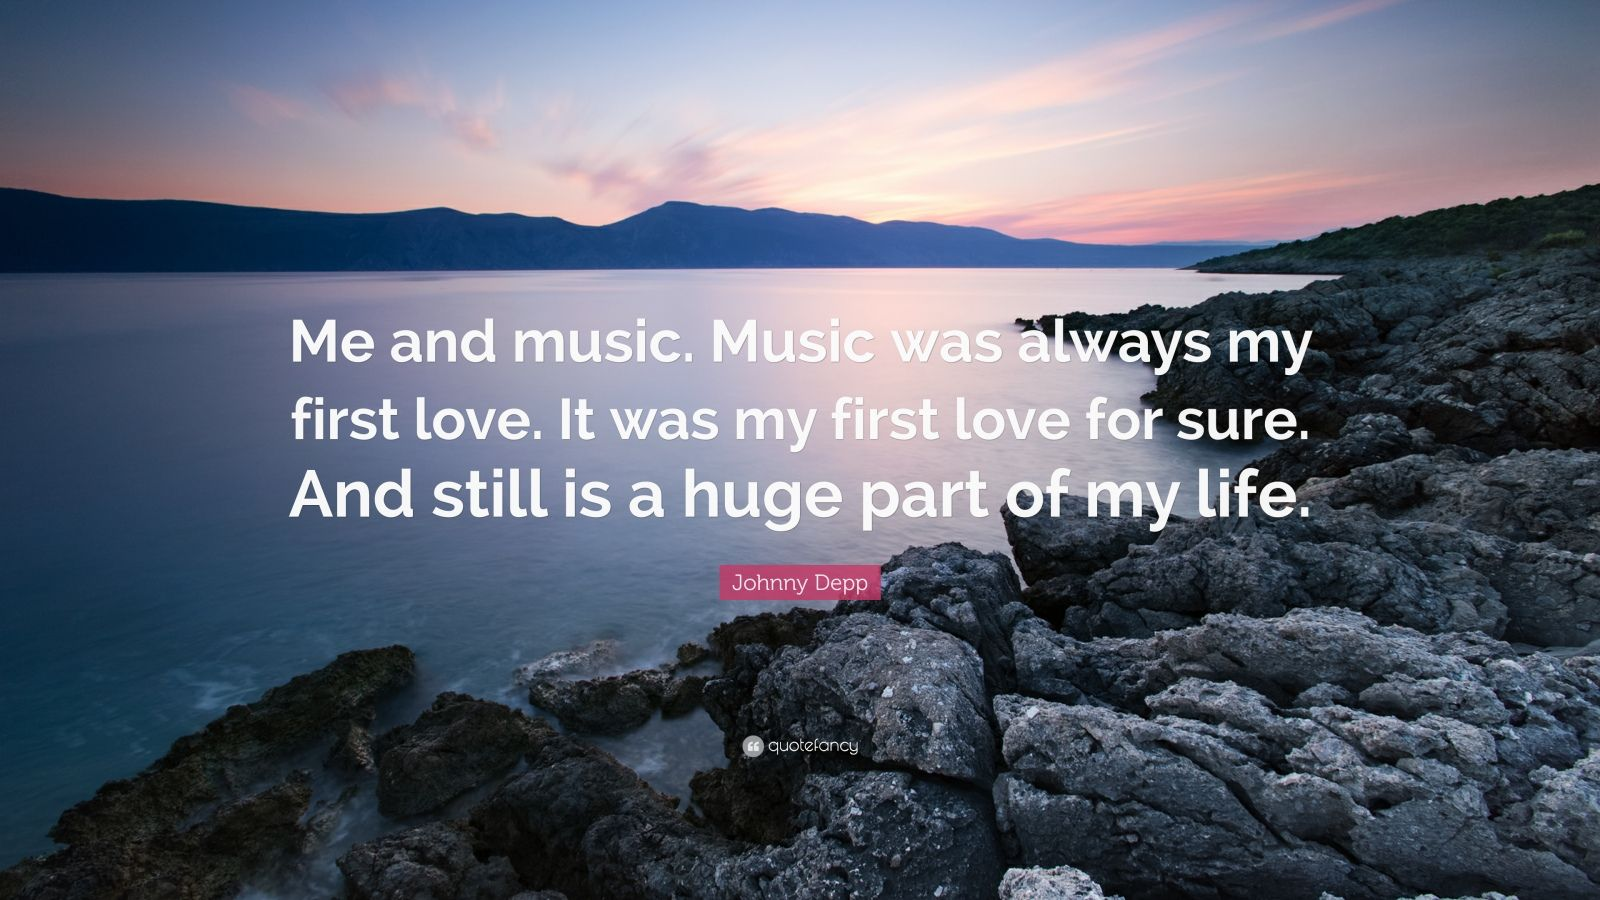 """Johnny Depp Quote: """"Me and music. Music was always my first love. It was my first love for sure. And still is a huge part of my life."""""""